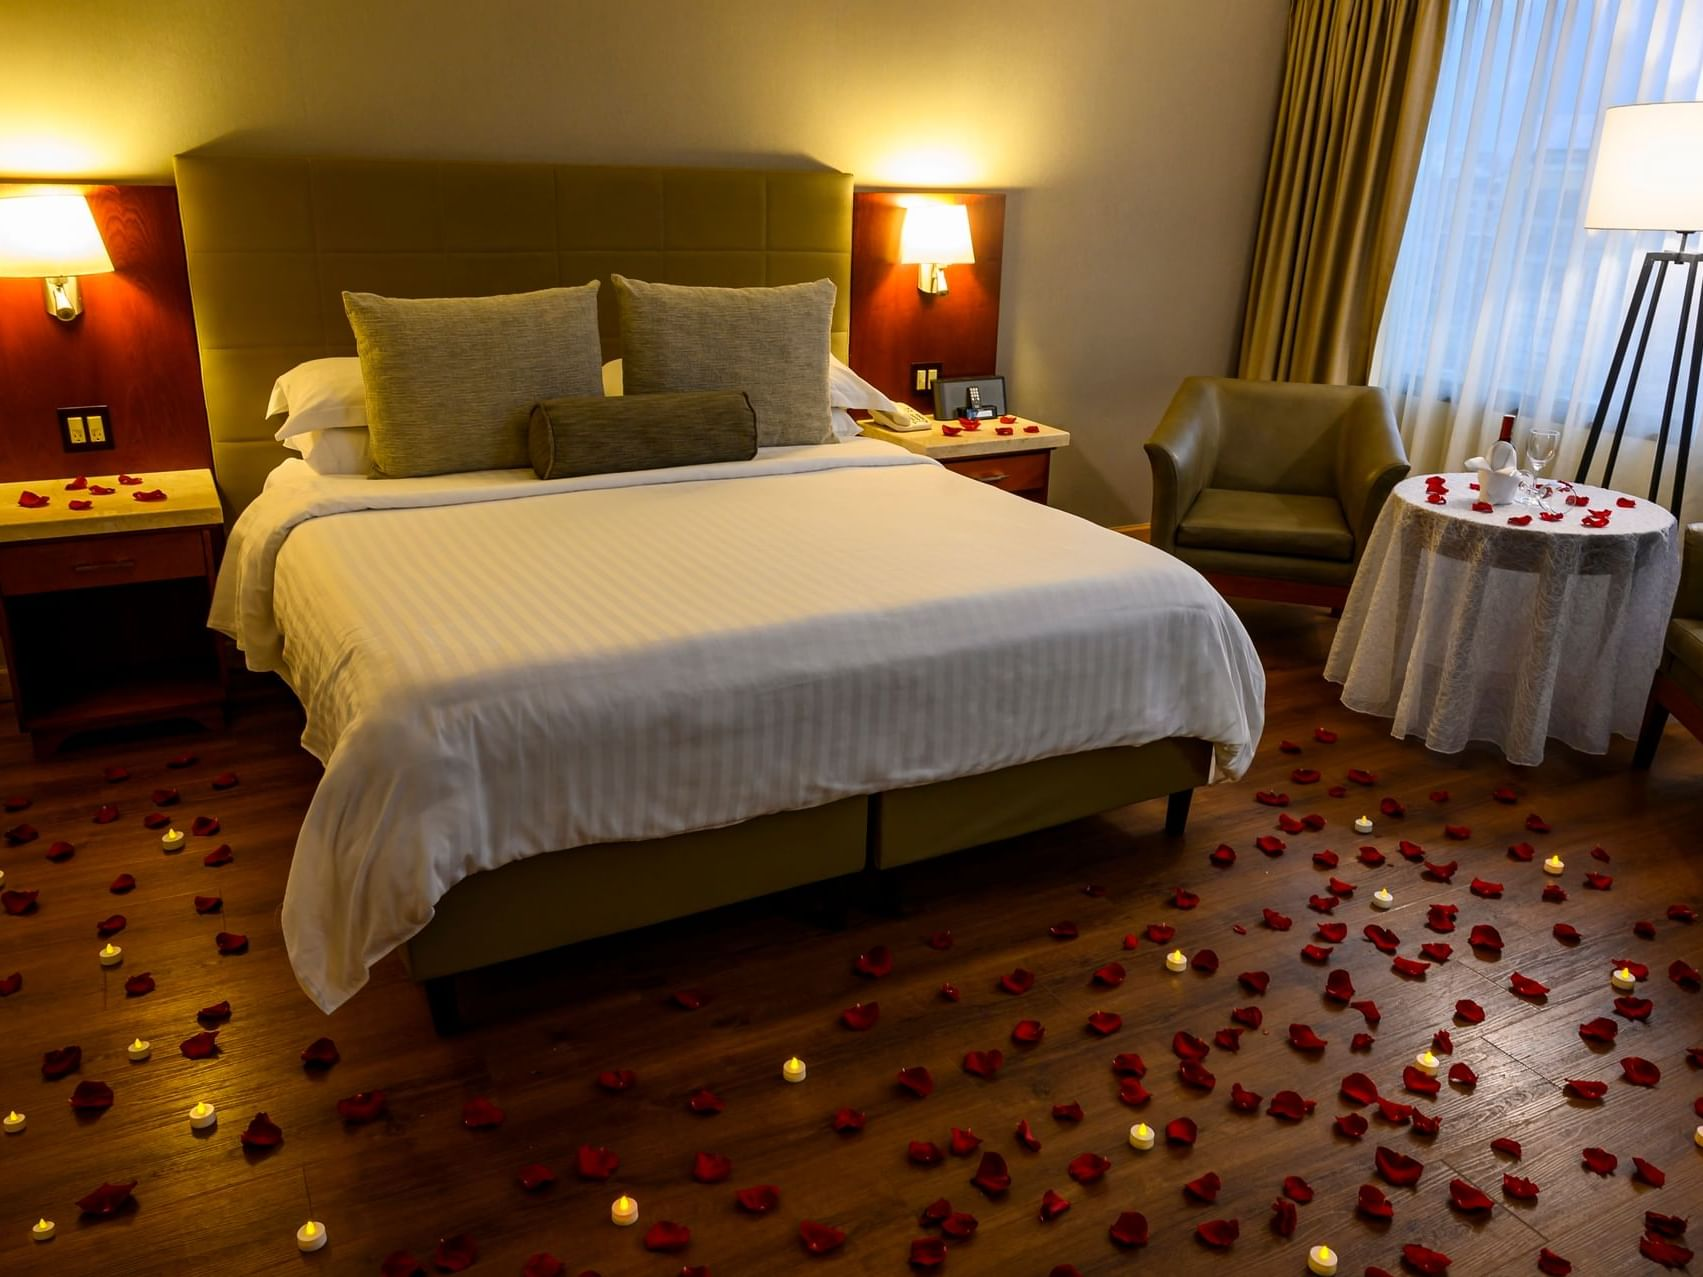 A bedroom decorated for the couple at Bogotá Plaza Hotelel